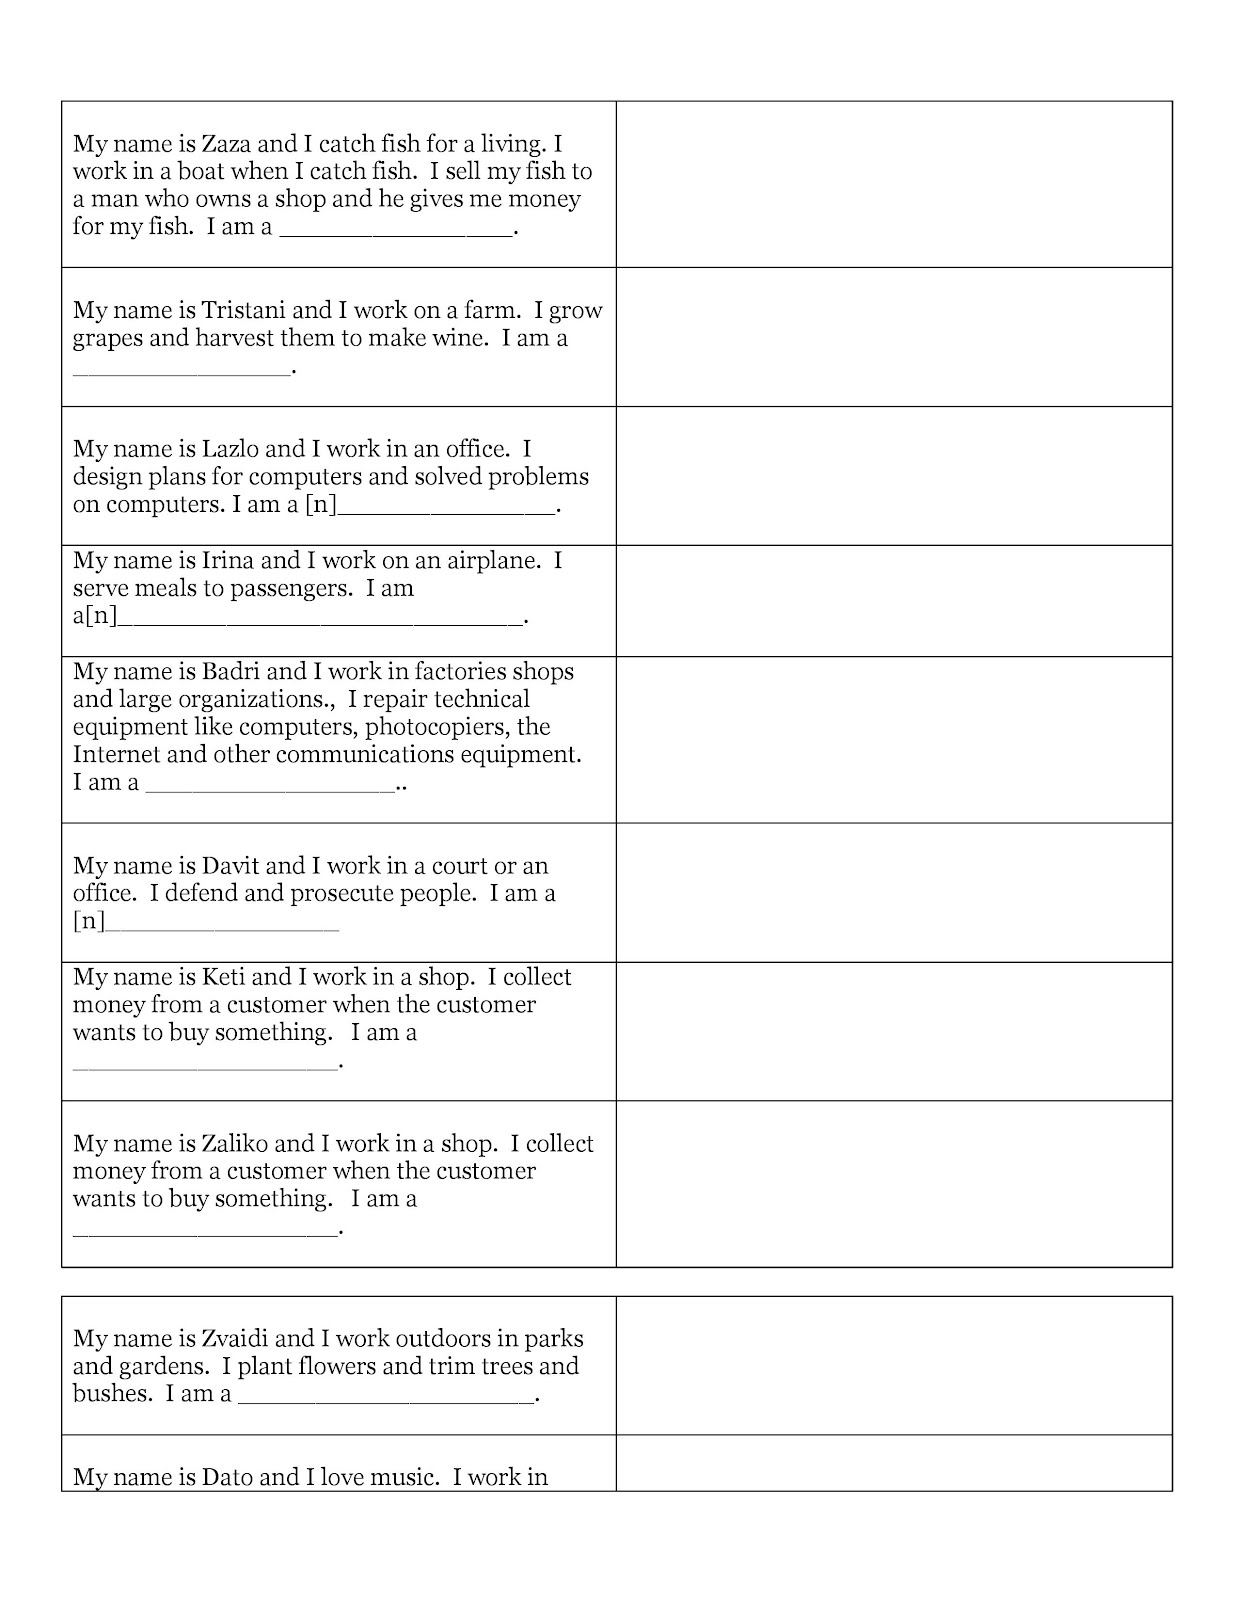 16 Best Images Of Worksheet For Word Documents